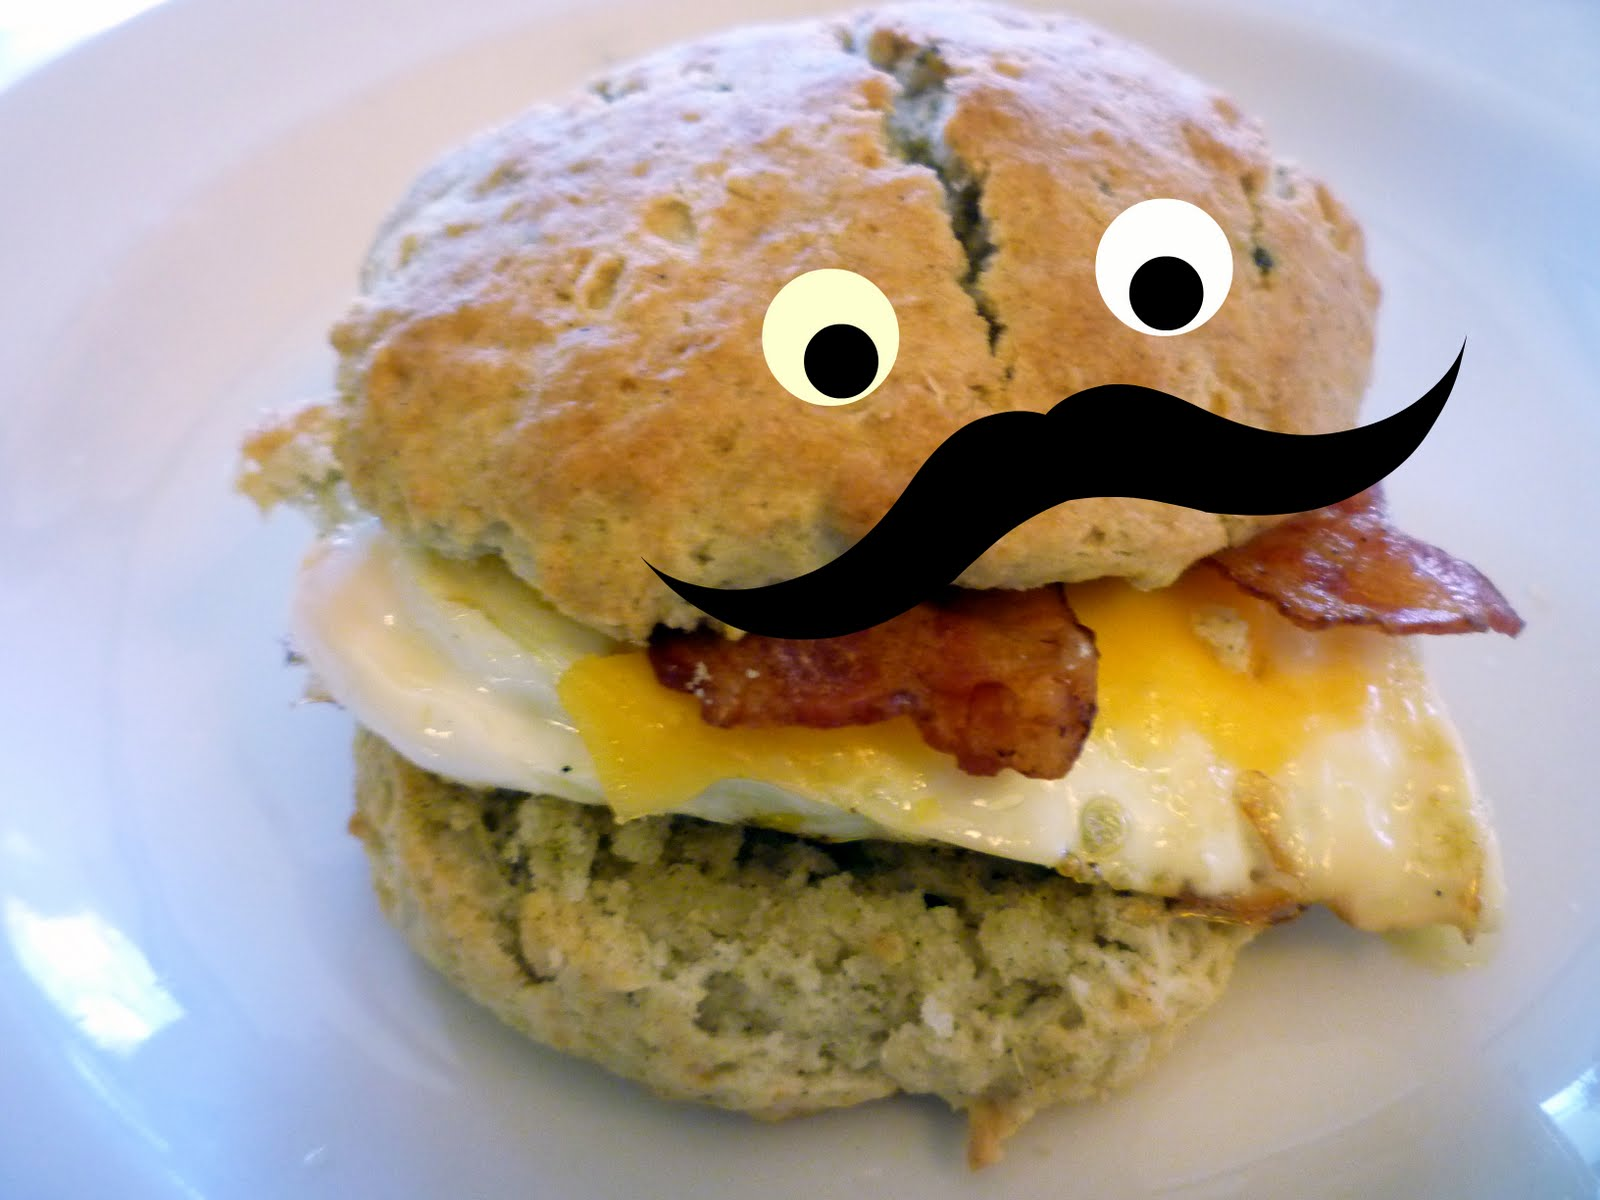 ... breakfast sandwich is for. Me give up the last breakfast sandwich for